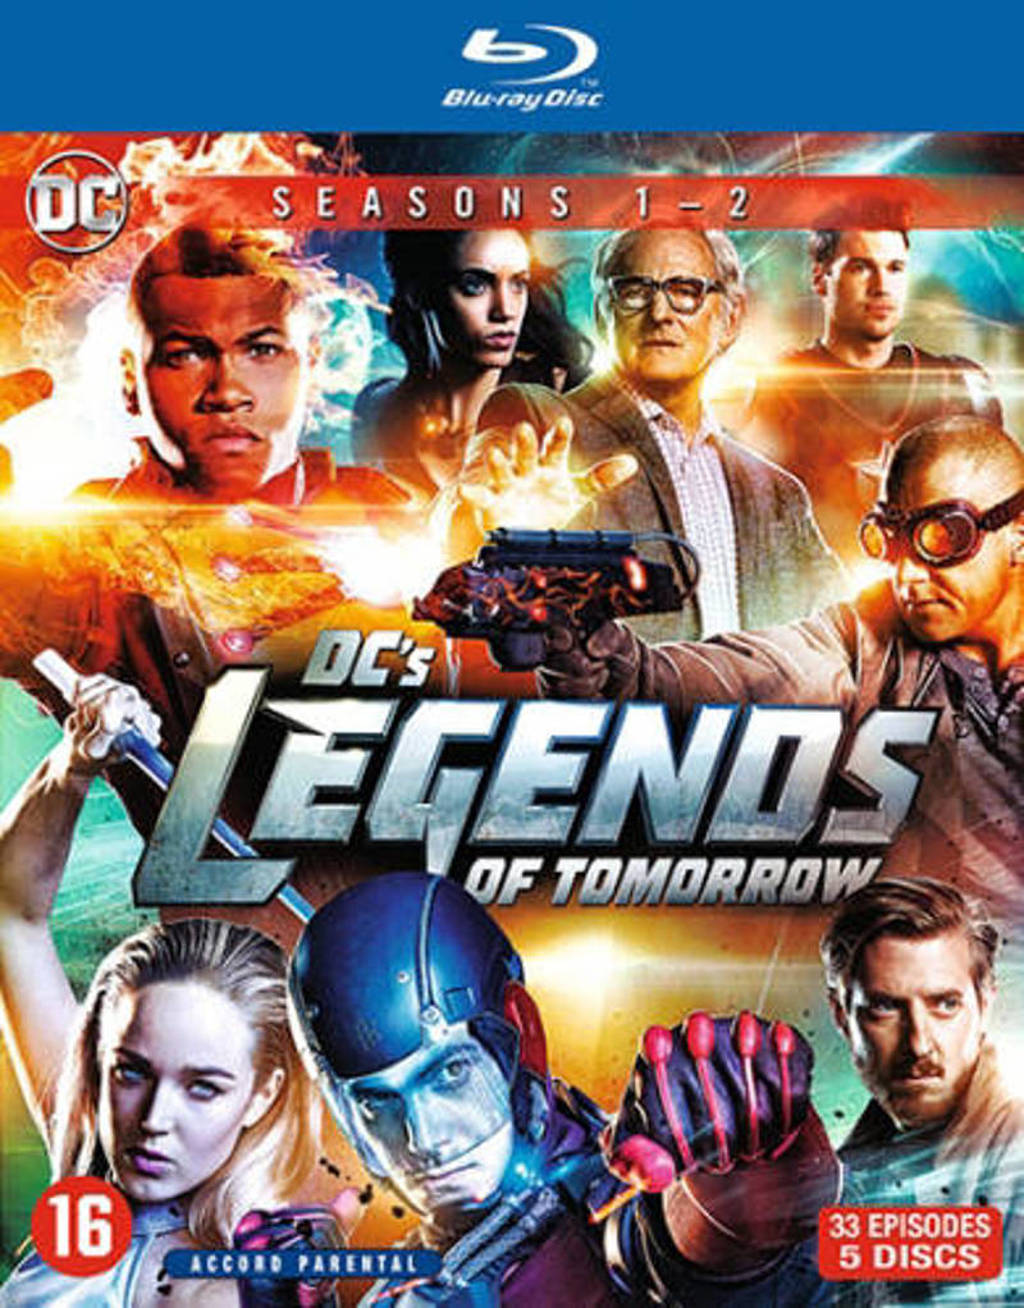 Legends of tomorrow - Seizoen 1 & 2  (Blu-ray)